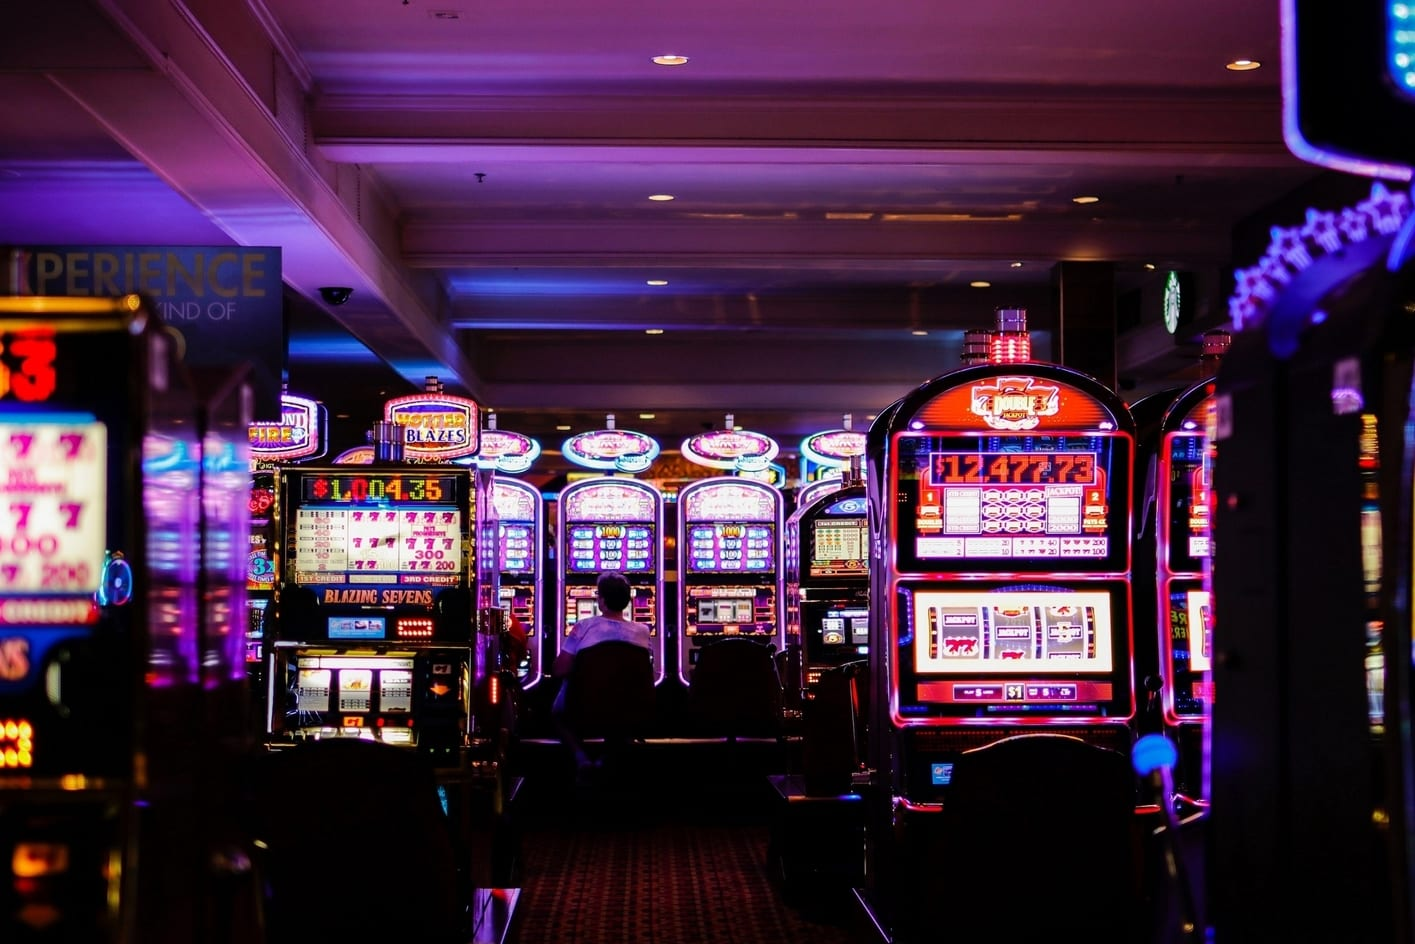 Gamble at a casino, best things to do in Las Vegas at night